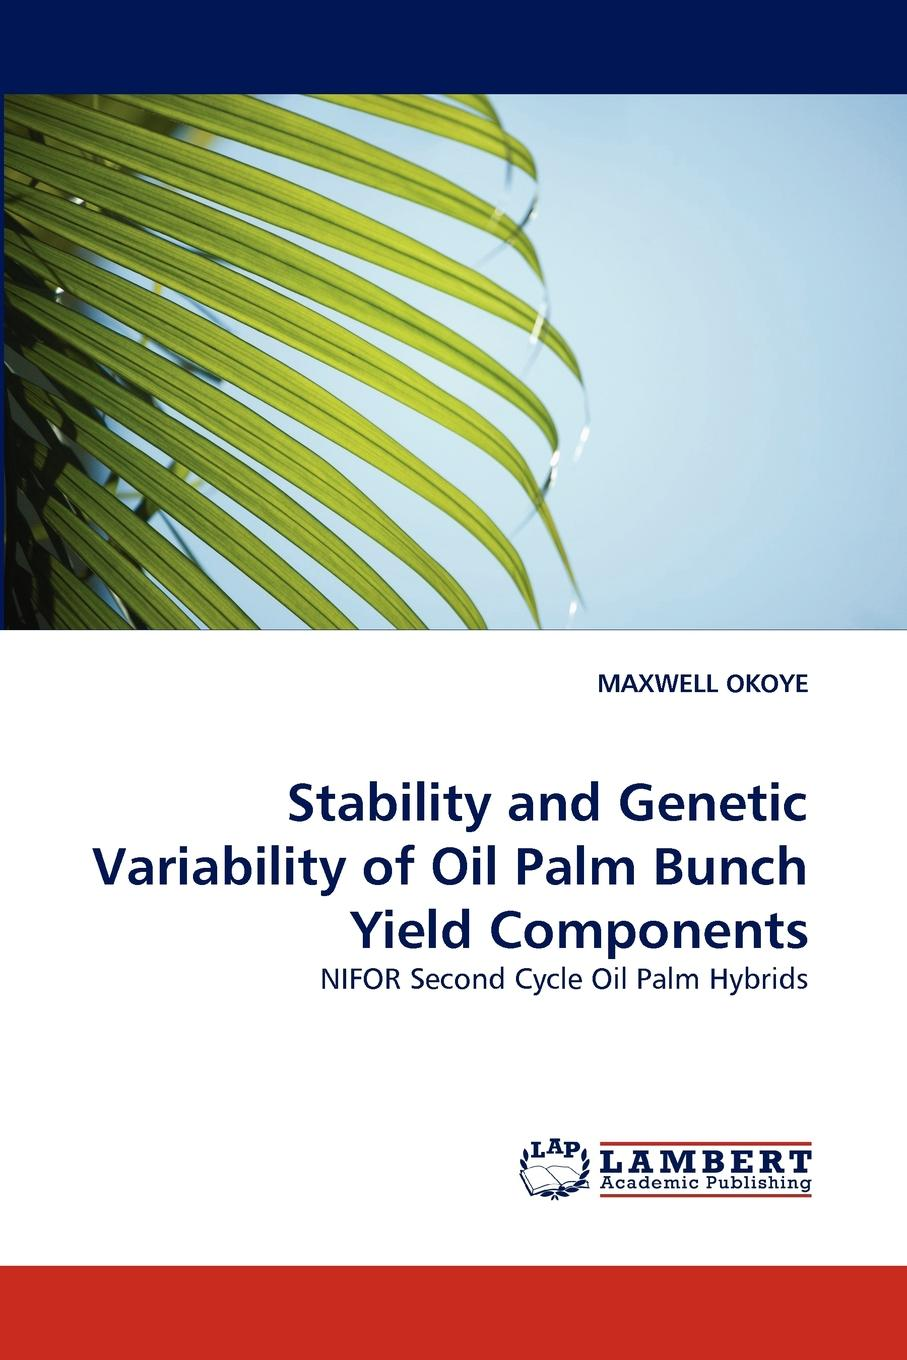 Maxwell Okoye Stability and Genetic Variability of Oil Palm Bunch Yield Components itm engine components 057 1148 new oil pump